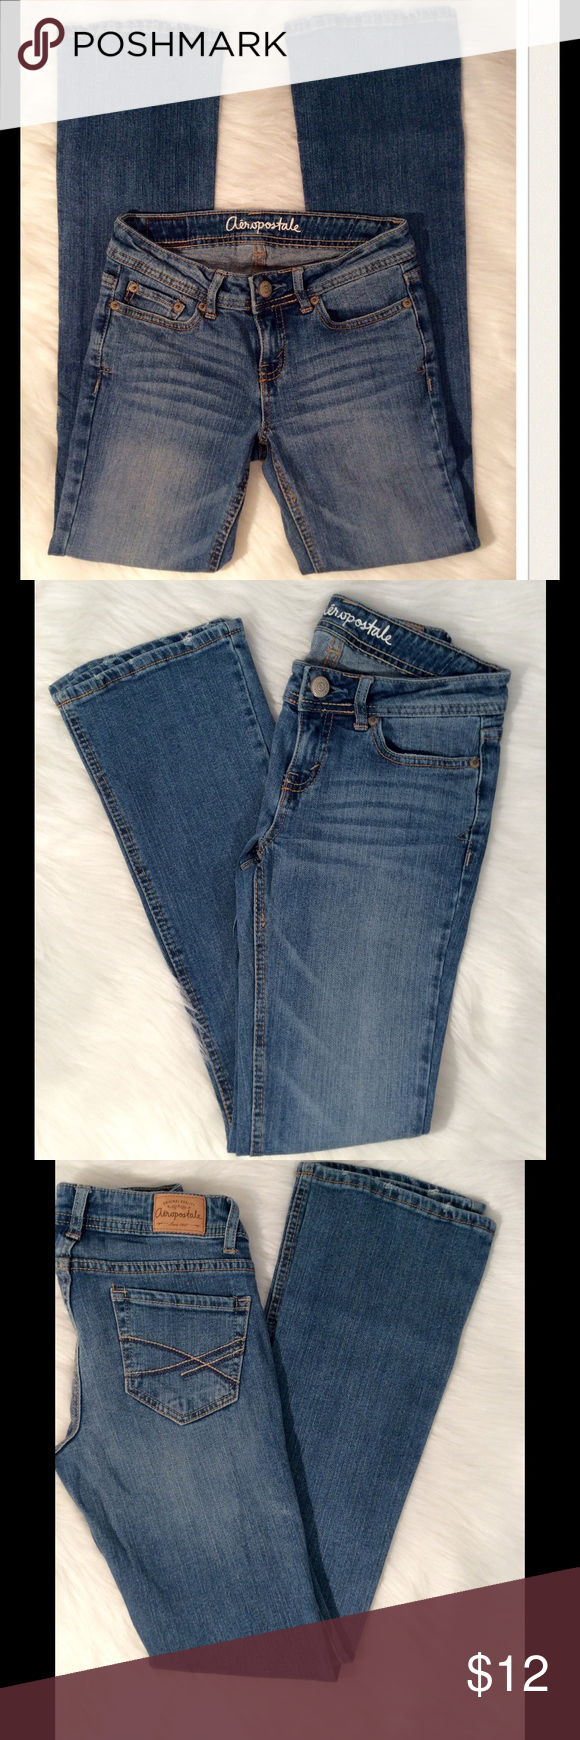 Aeropostale Chelsea Bootcut Jeans Aeropostale Chelsea Bootcut Jeans. Size 000 Regular. Featuring slim fit Bootcut, zipper fly, authentic detailing, 2 tone embroidery on back pockets. Materials: 99% cotton/1% spandex. Aeropostale Jeans Boot Cut